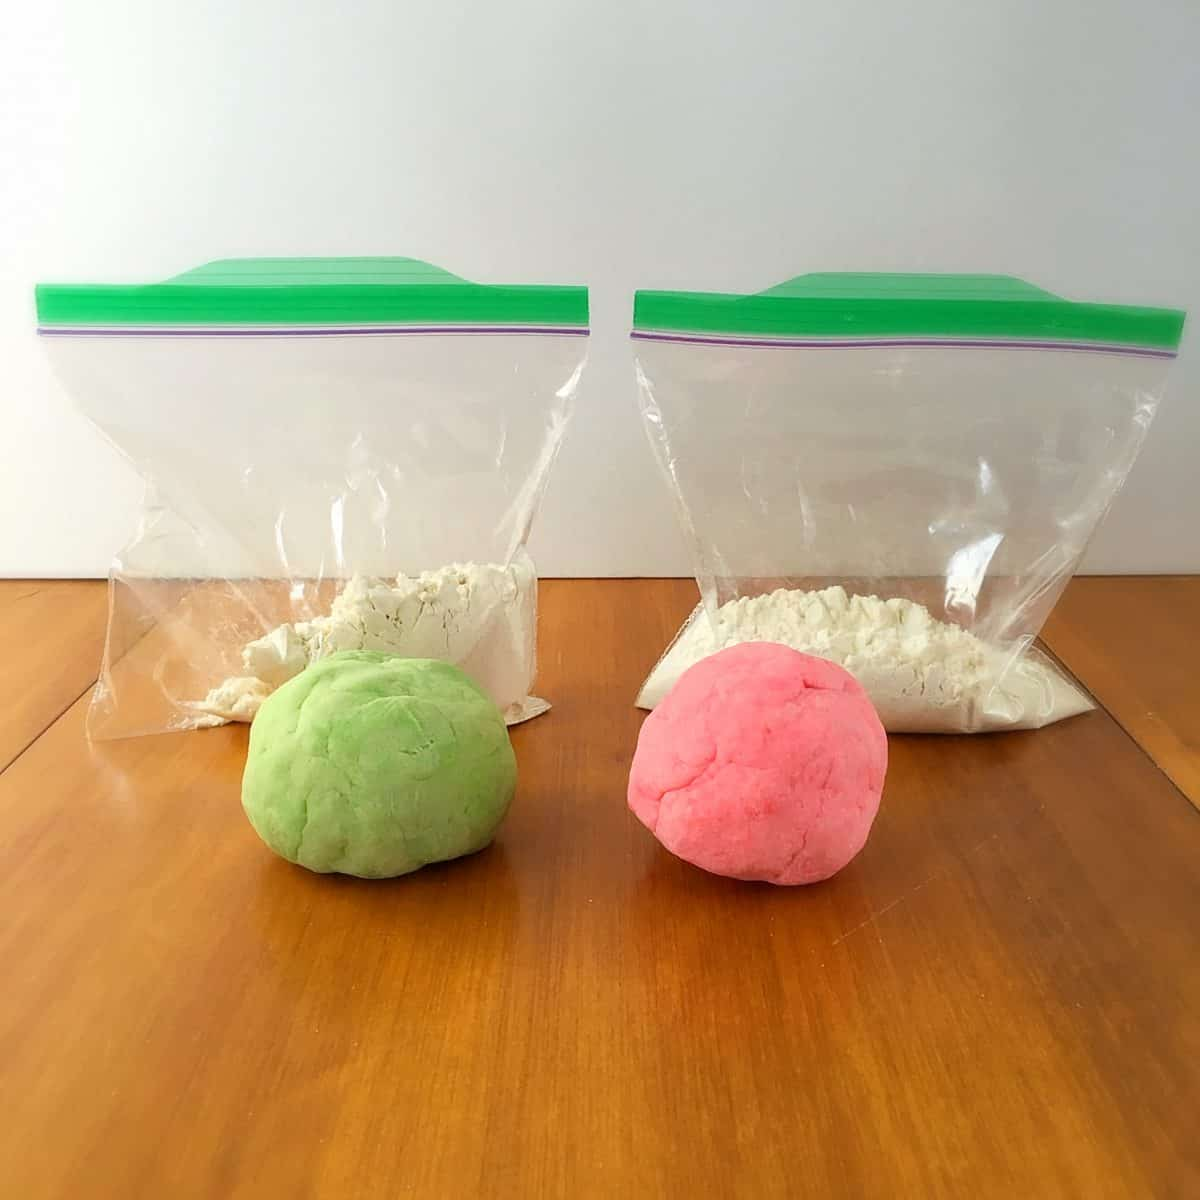 Create these fun homemade playdough packs. They can be made ahead of time and pulled out in a pinch. Plus they contain a fun color surprise!